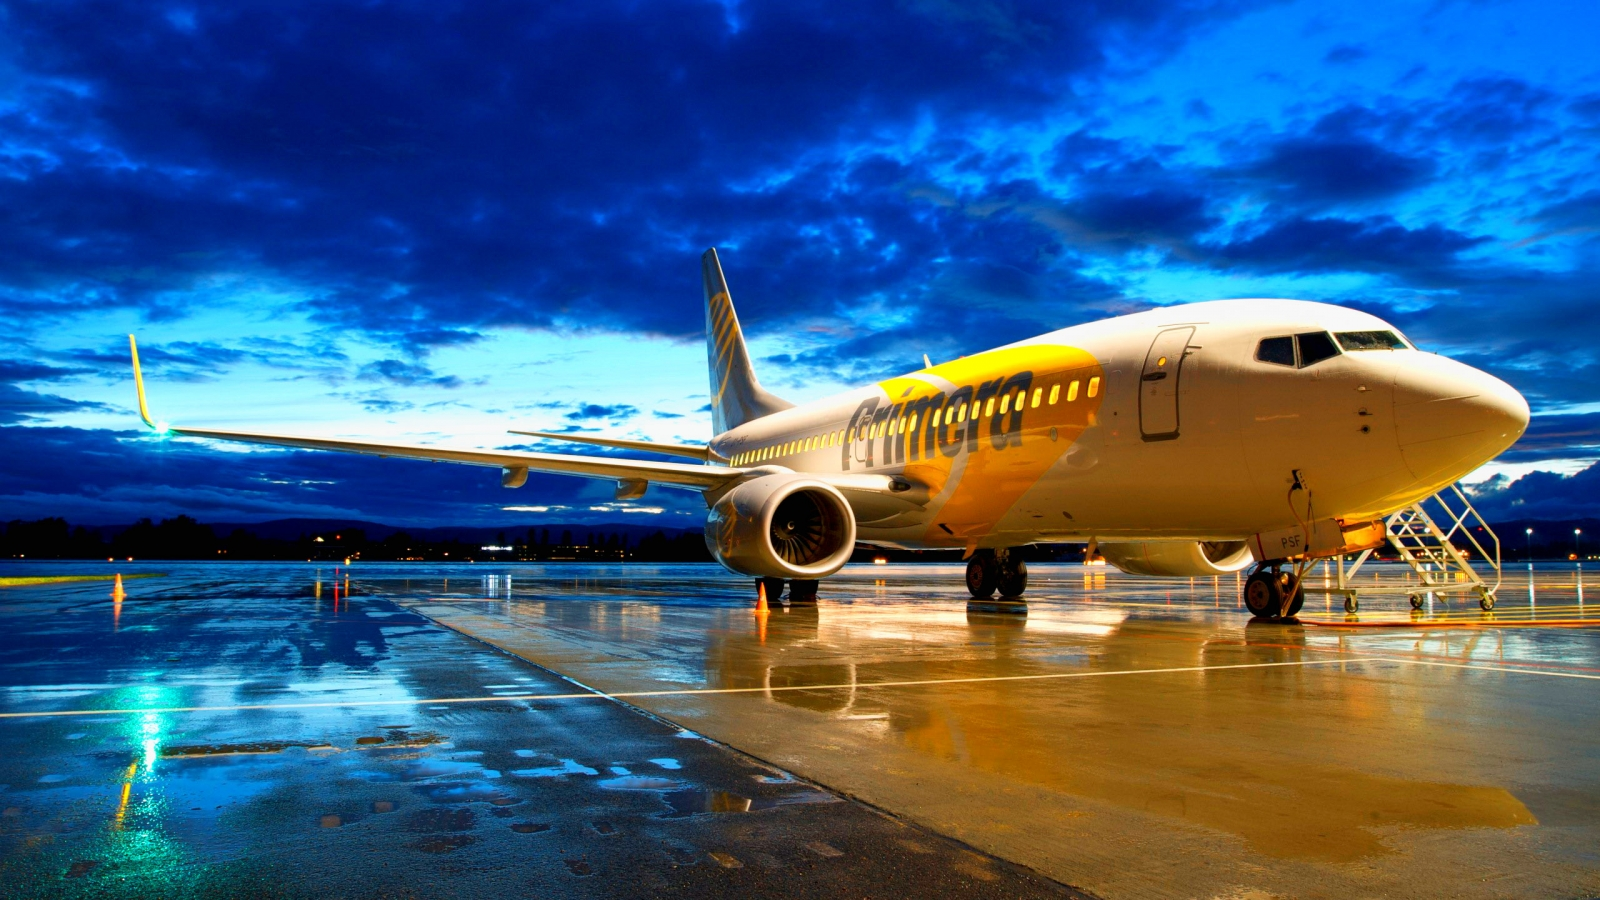 Amazing Boeing Wallpaper